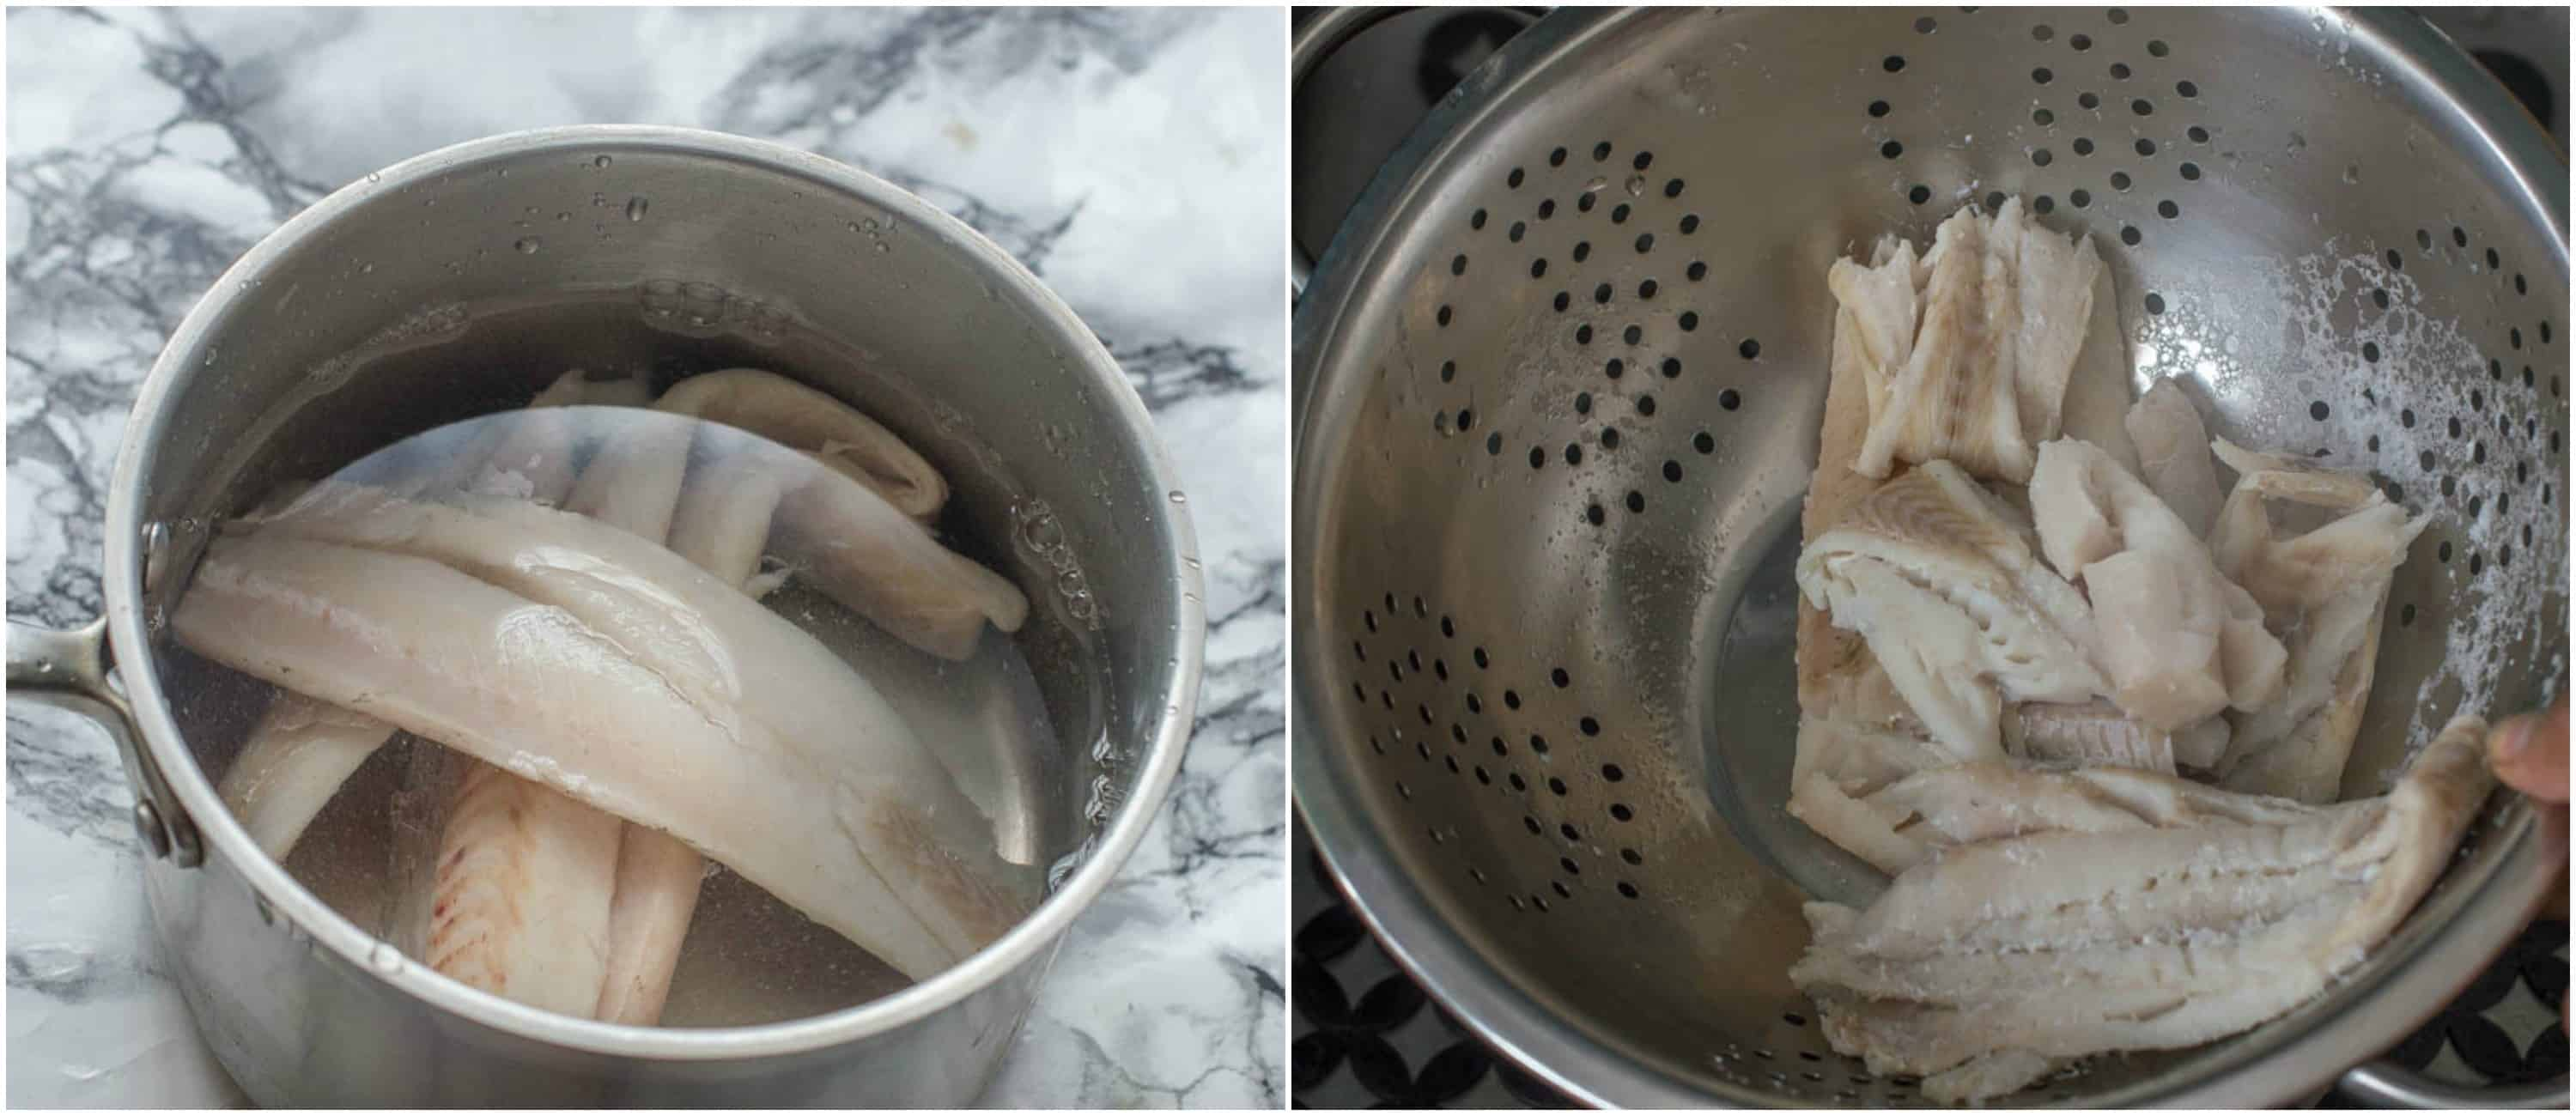 How to make salt fish steps 3 4 - How to make salt fish (unrefined version)